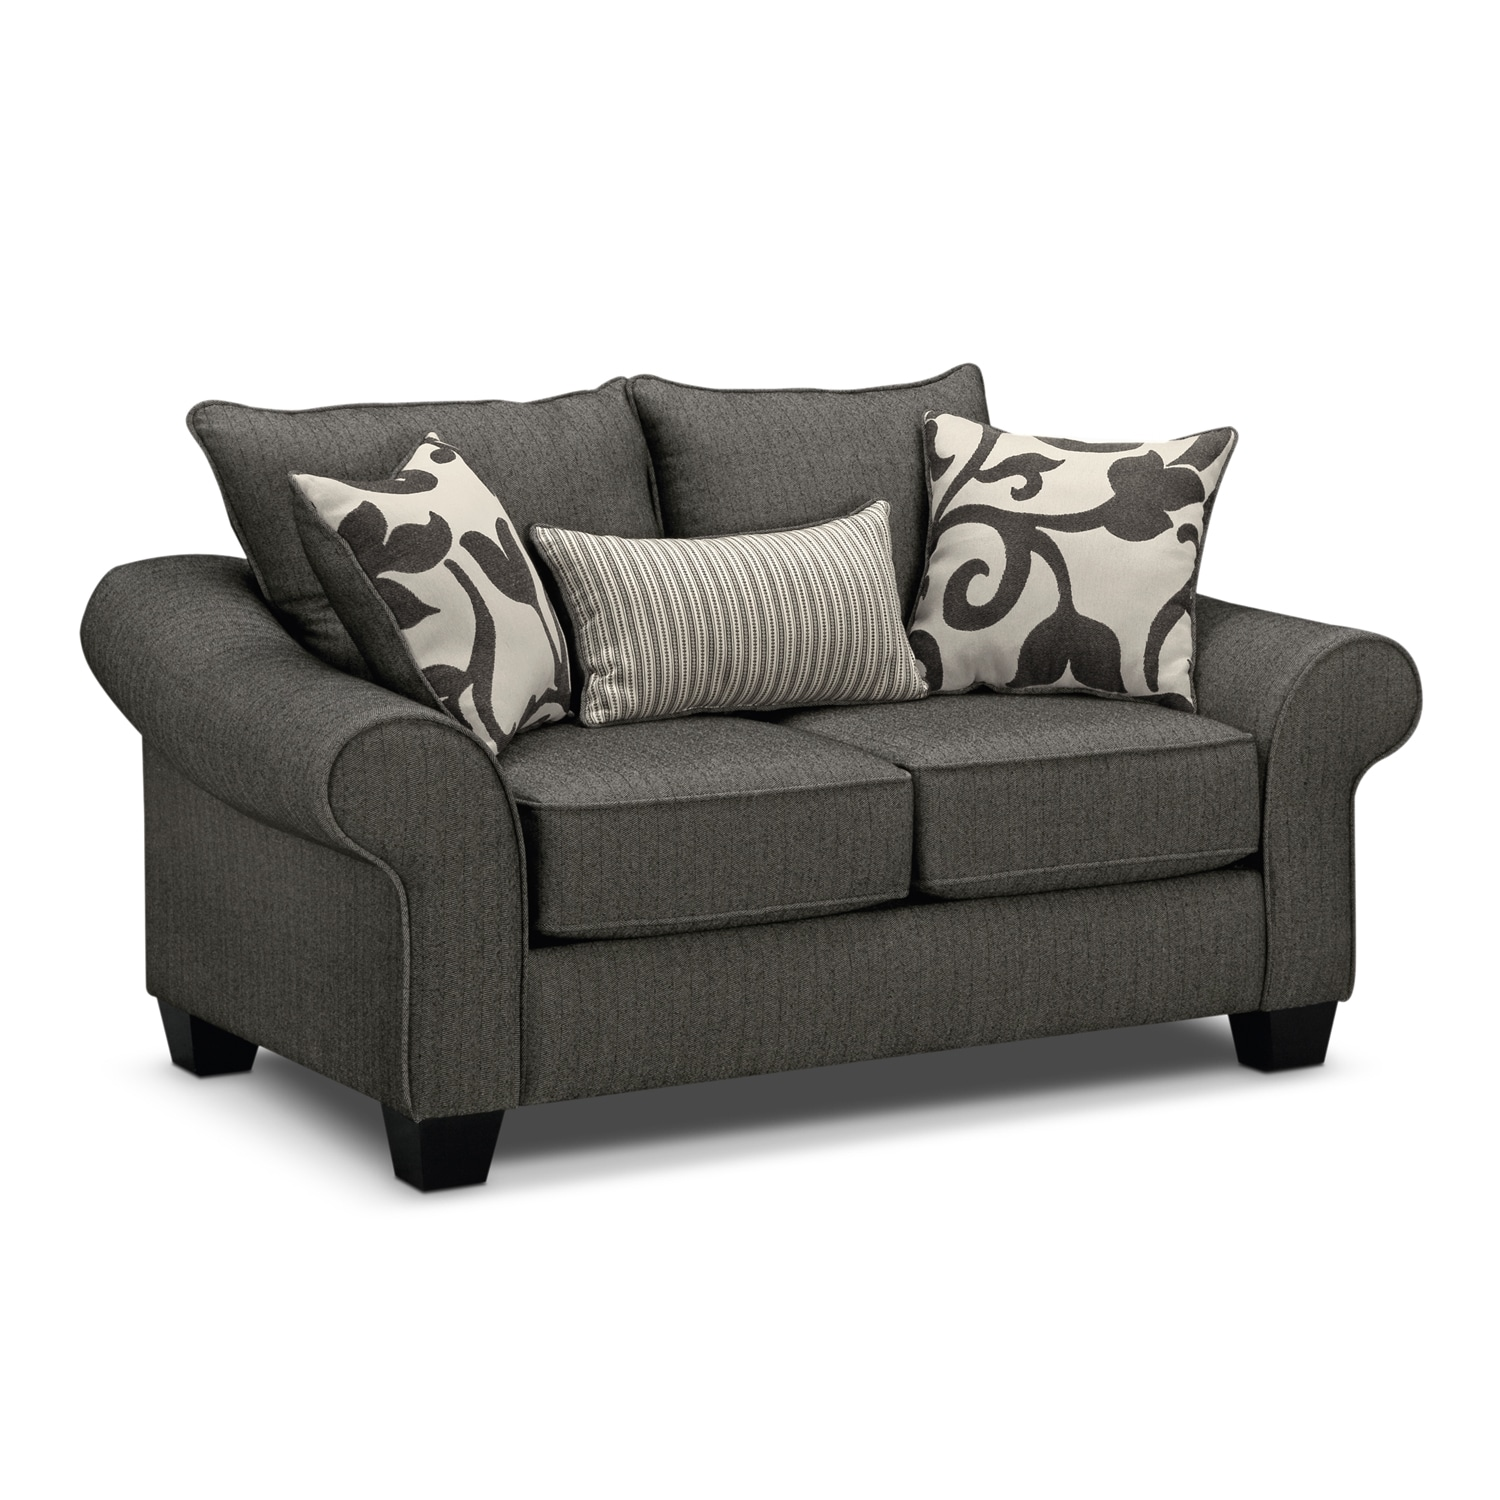 Colette Full Innerspring Sleeper Sofa Loveseat And Accent Chair Set Gray Value City Furniture